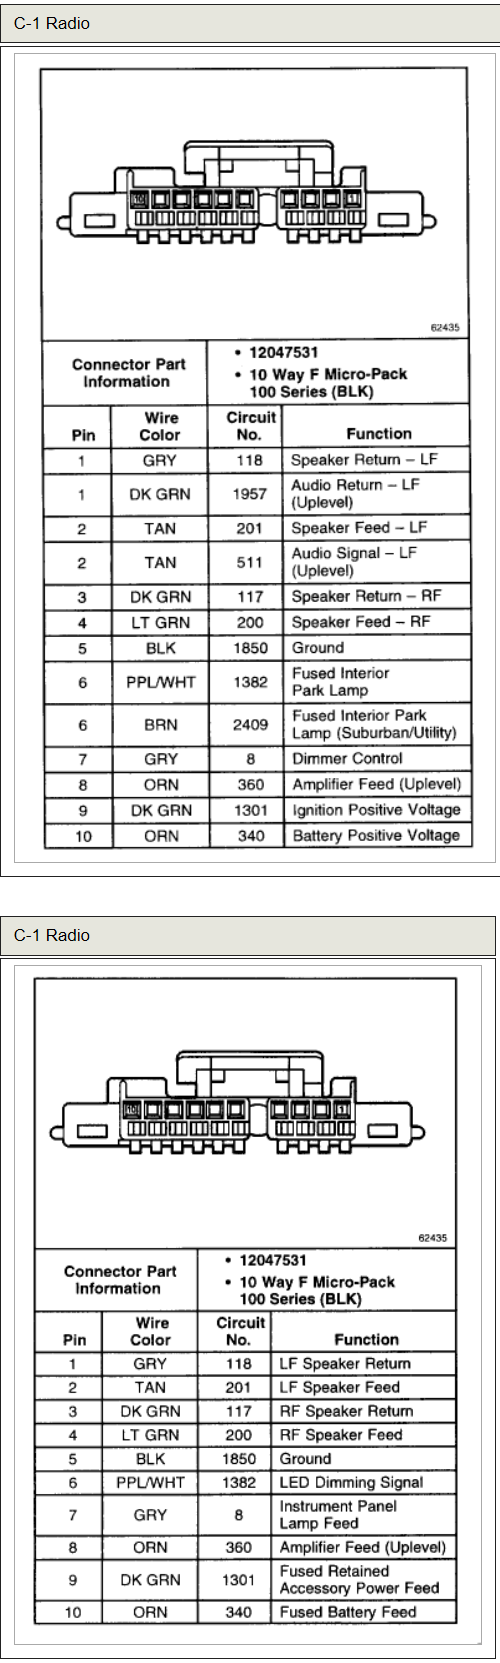 Chevrolet Tahoe LS 2000 stereo wiring connector 2 2008 chevy tahoe wiring diagram chevy colorado turn signal relay 2008 chevy malibu car stereo wiring diagram at gsmportal.co